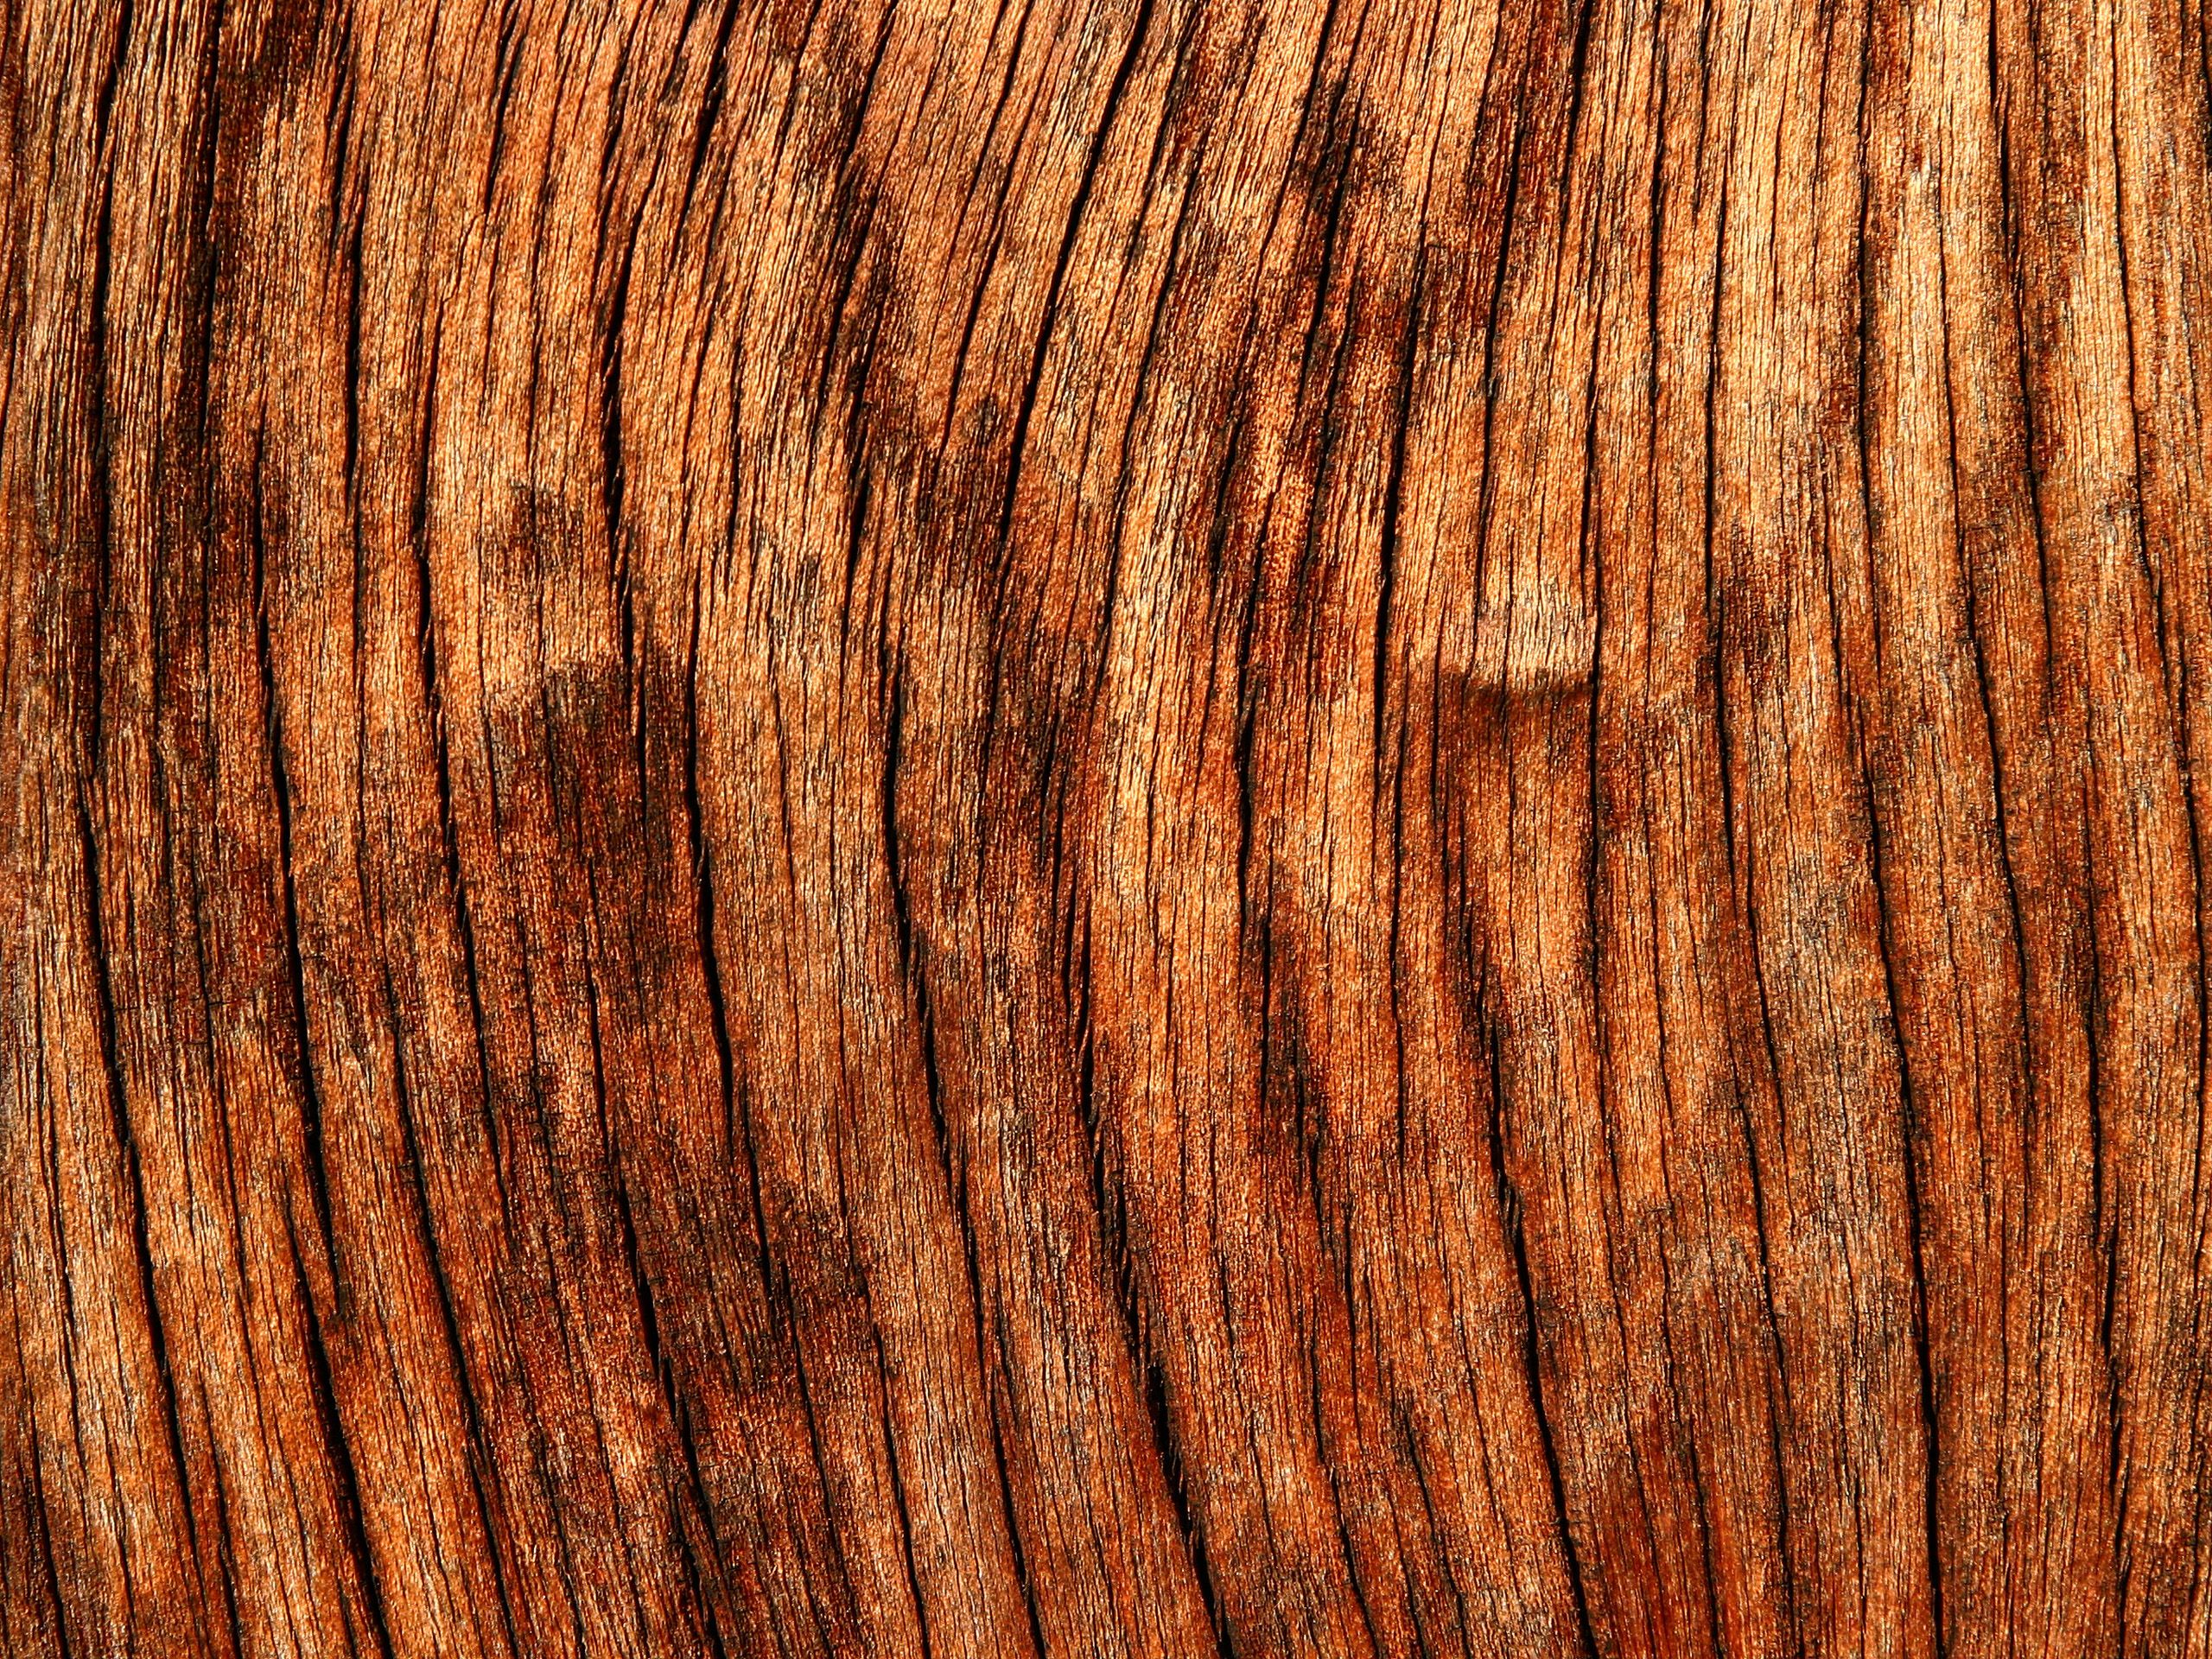 Download texture wooden boards background wood